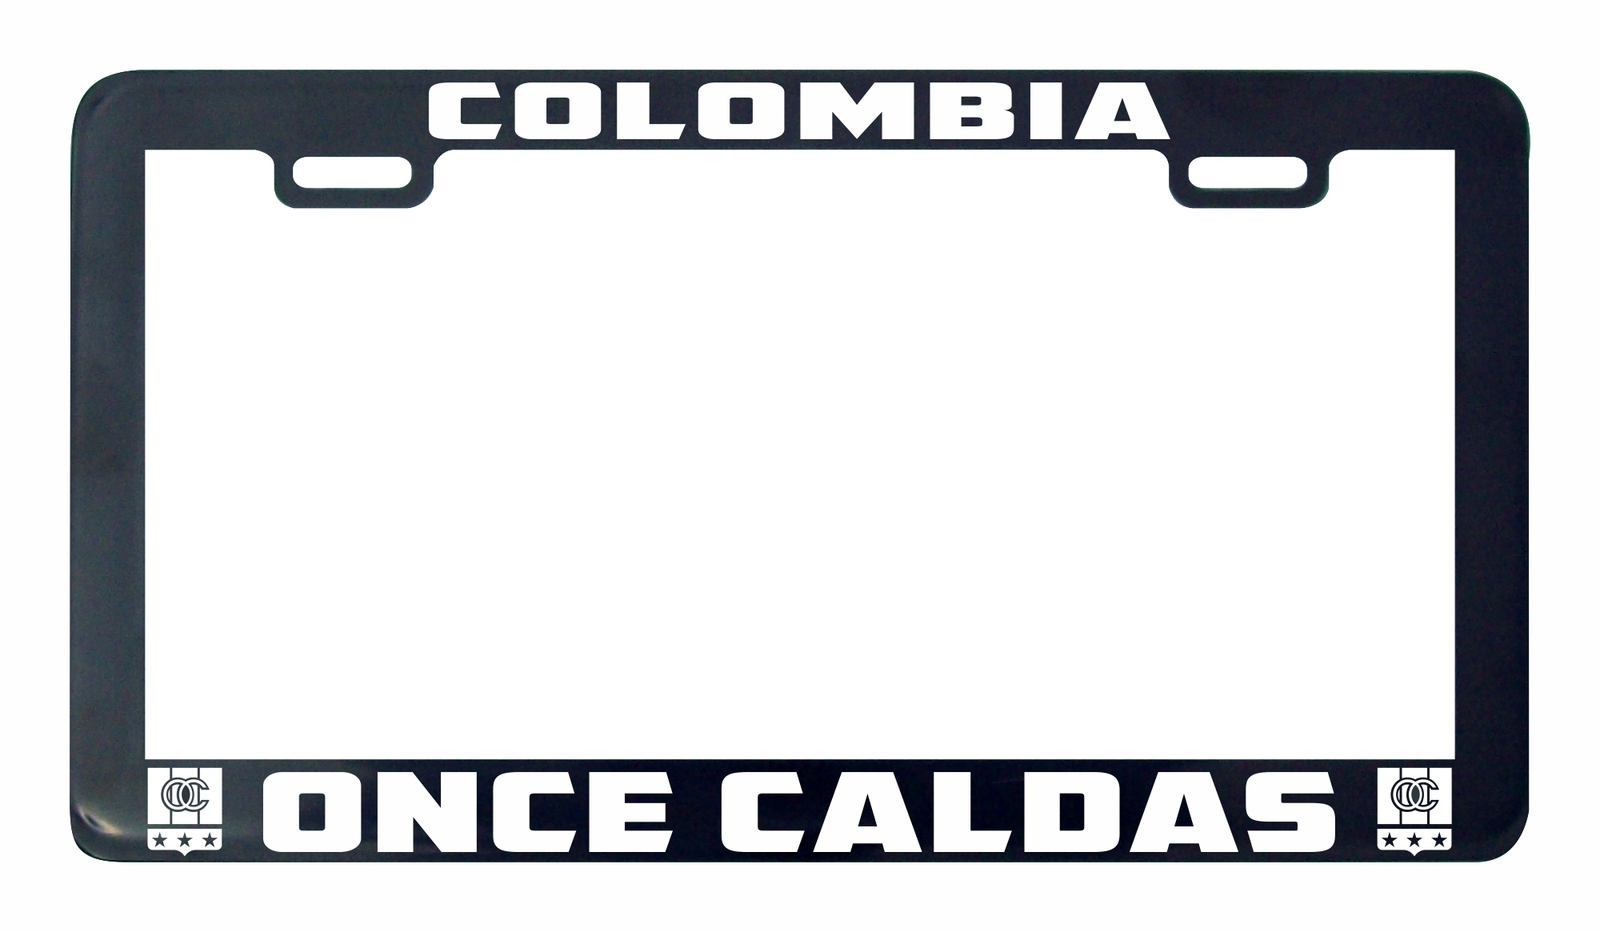 Primary image for Once Caldas Colombia futbol soccer license plate frame holder tag